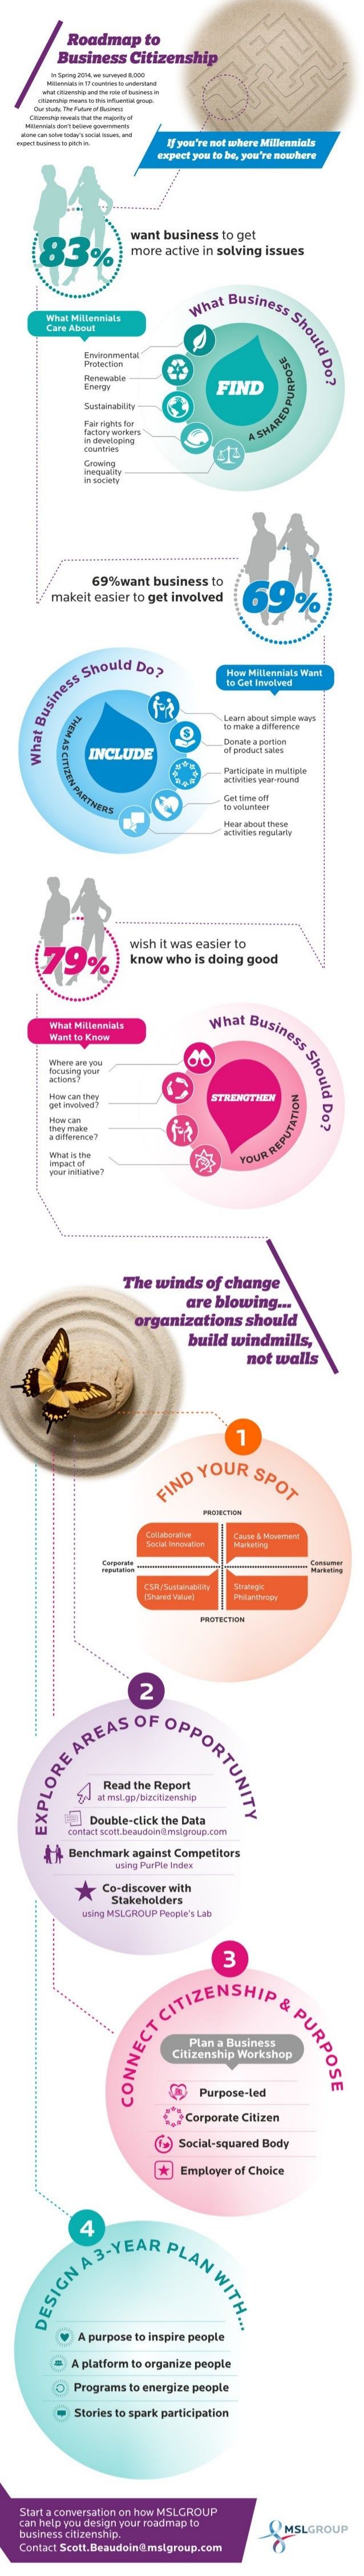 Infographic: The Roadmap to Business Citizenship